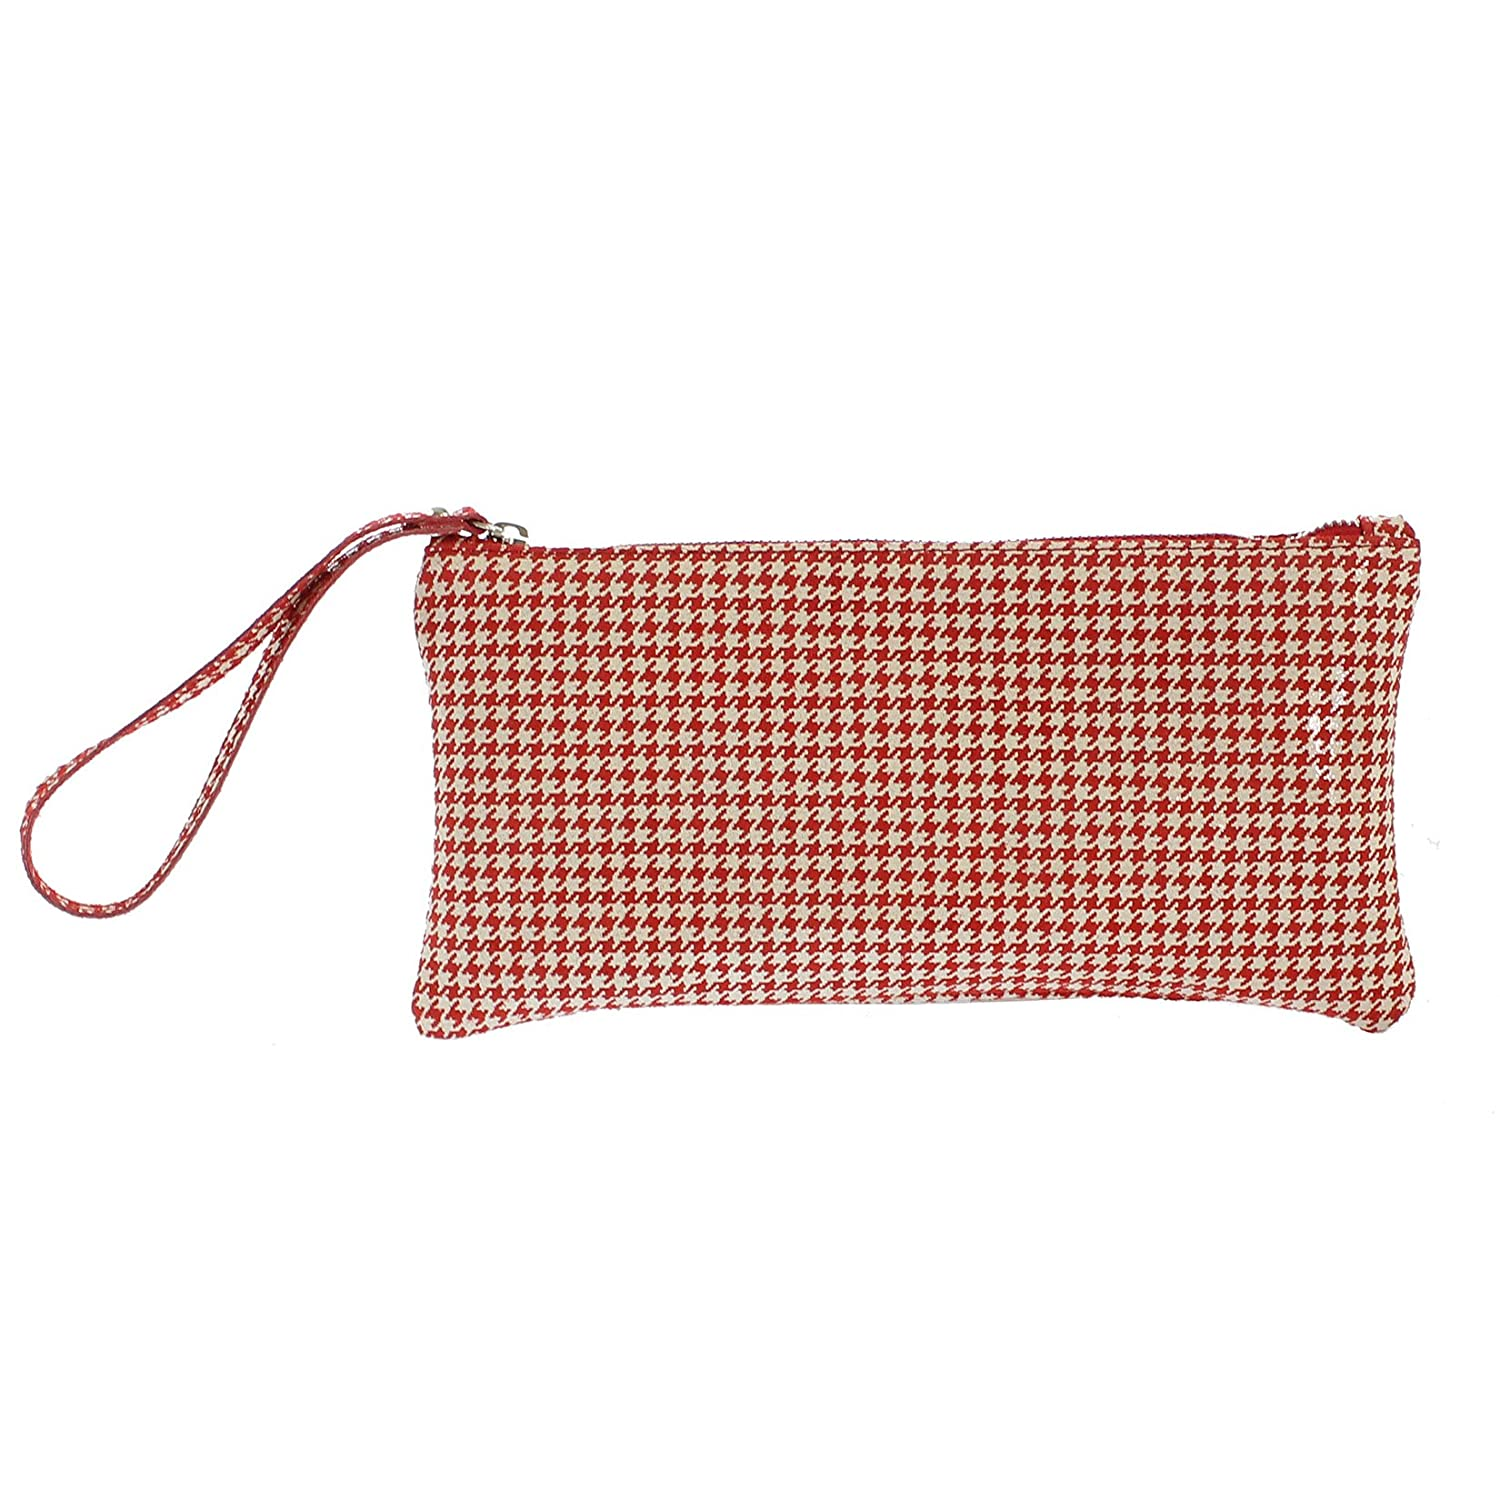 CTM Woman's clutch, small handbag with geometric patterns, italian genuine leather made in Italy 28x14x2.5 Cm